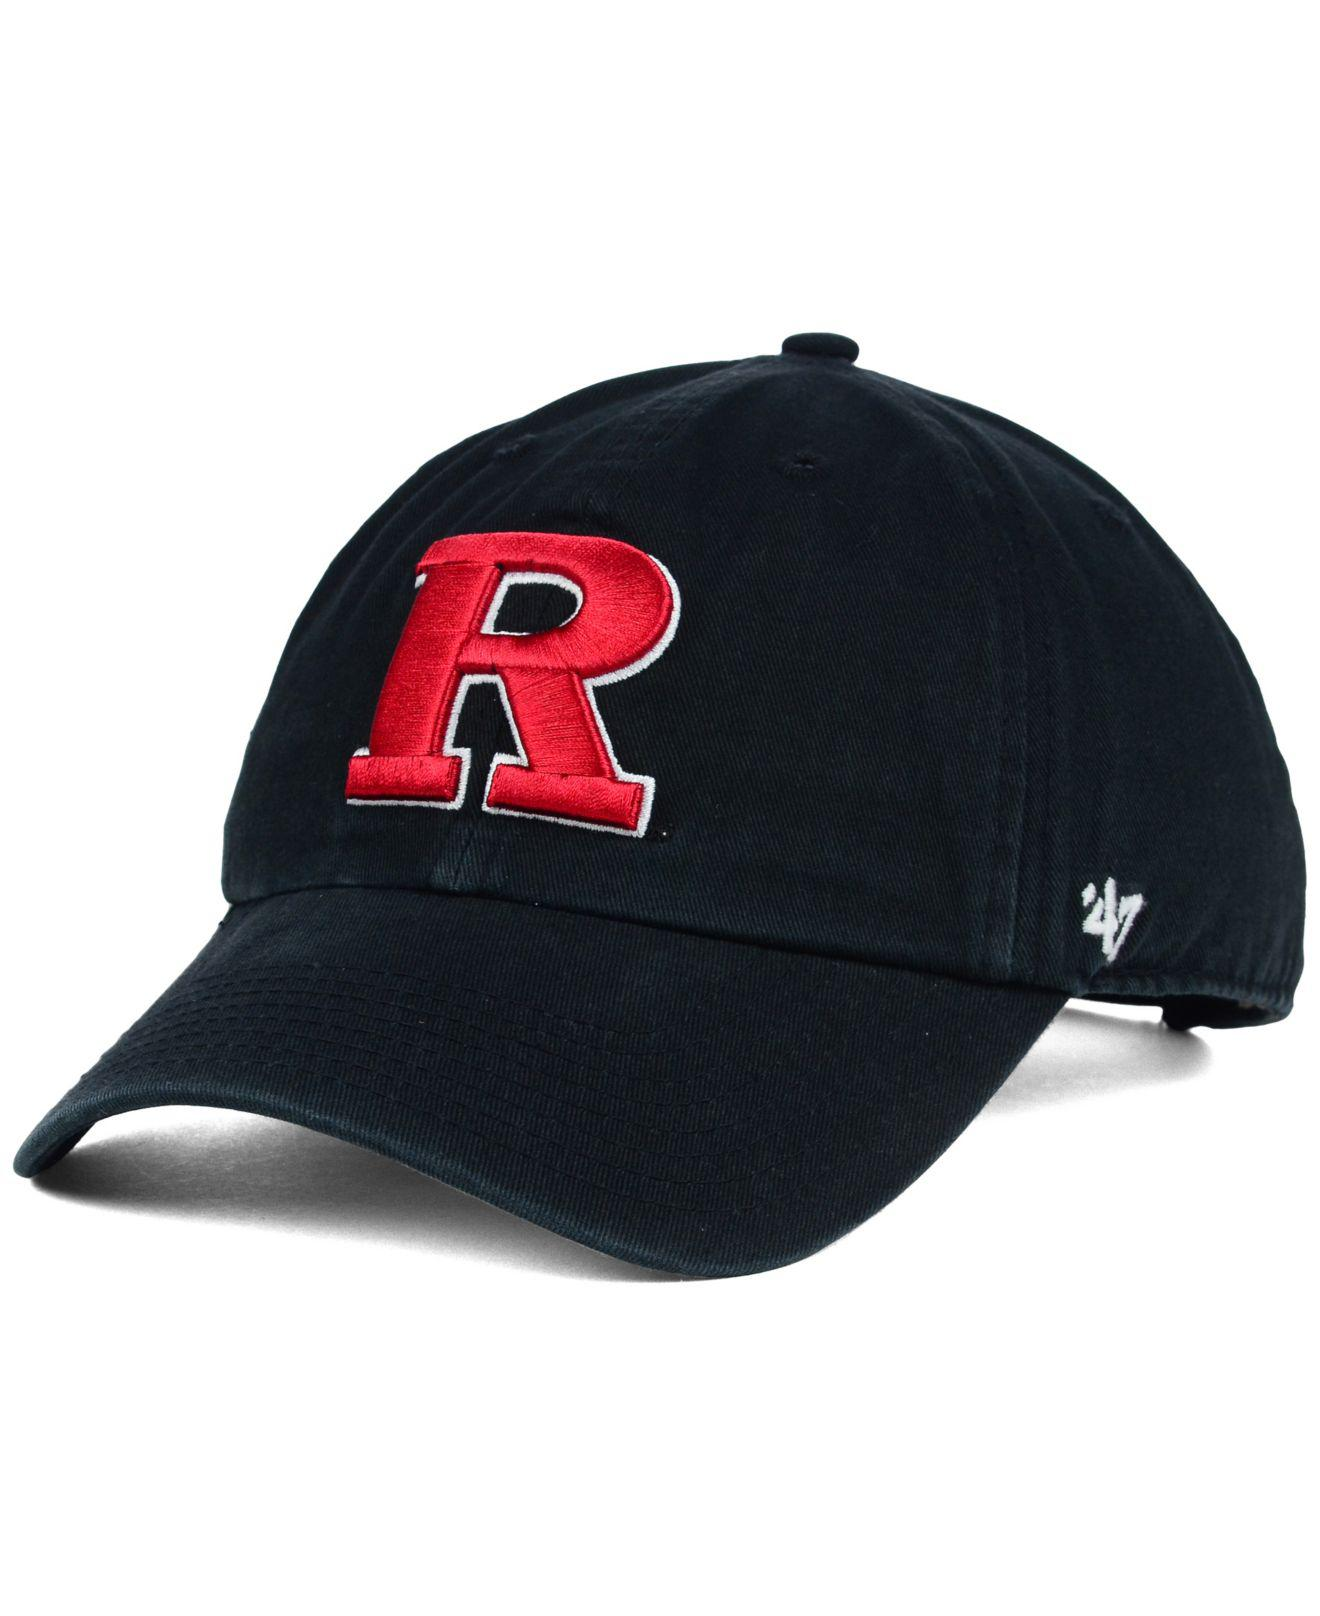 495b724e2d9 Lyst - 47 Brand Rutgers Scarlet Knights Clean-up Cap in Black for Men